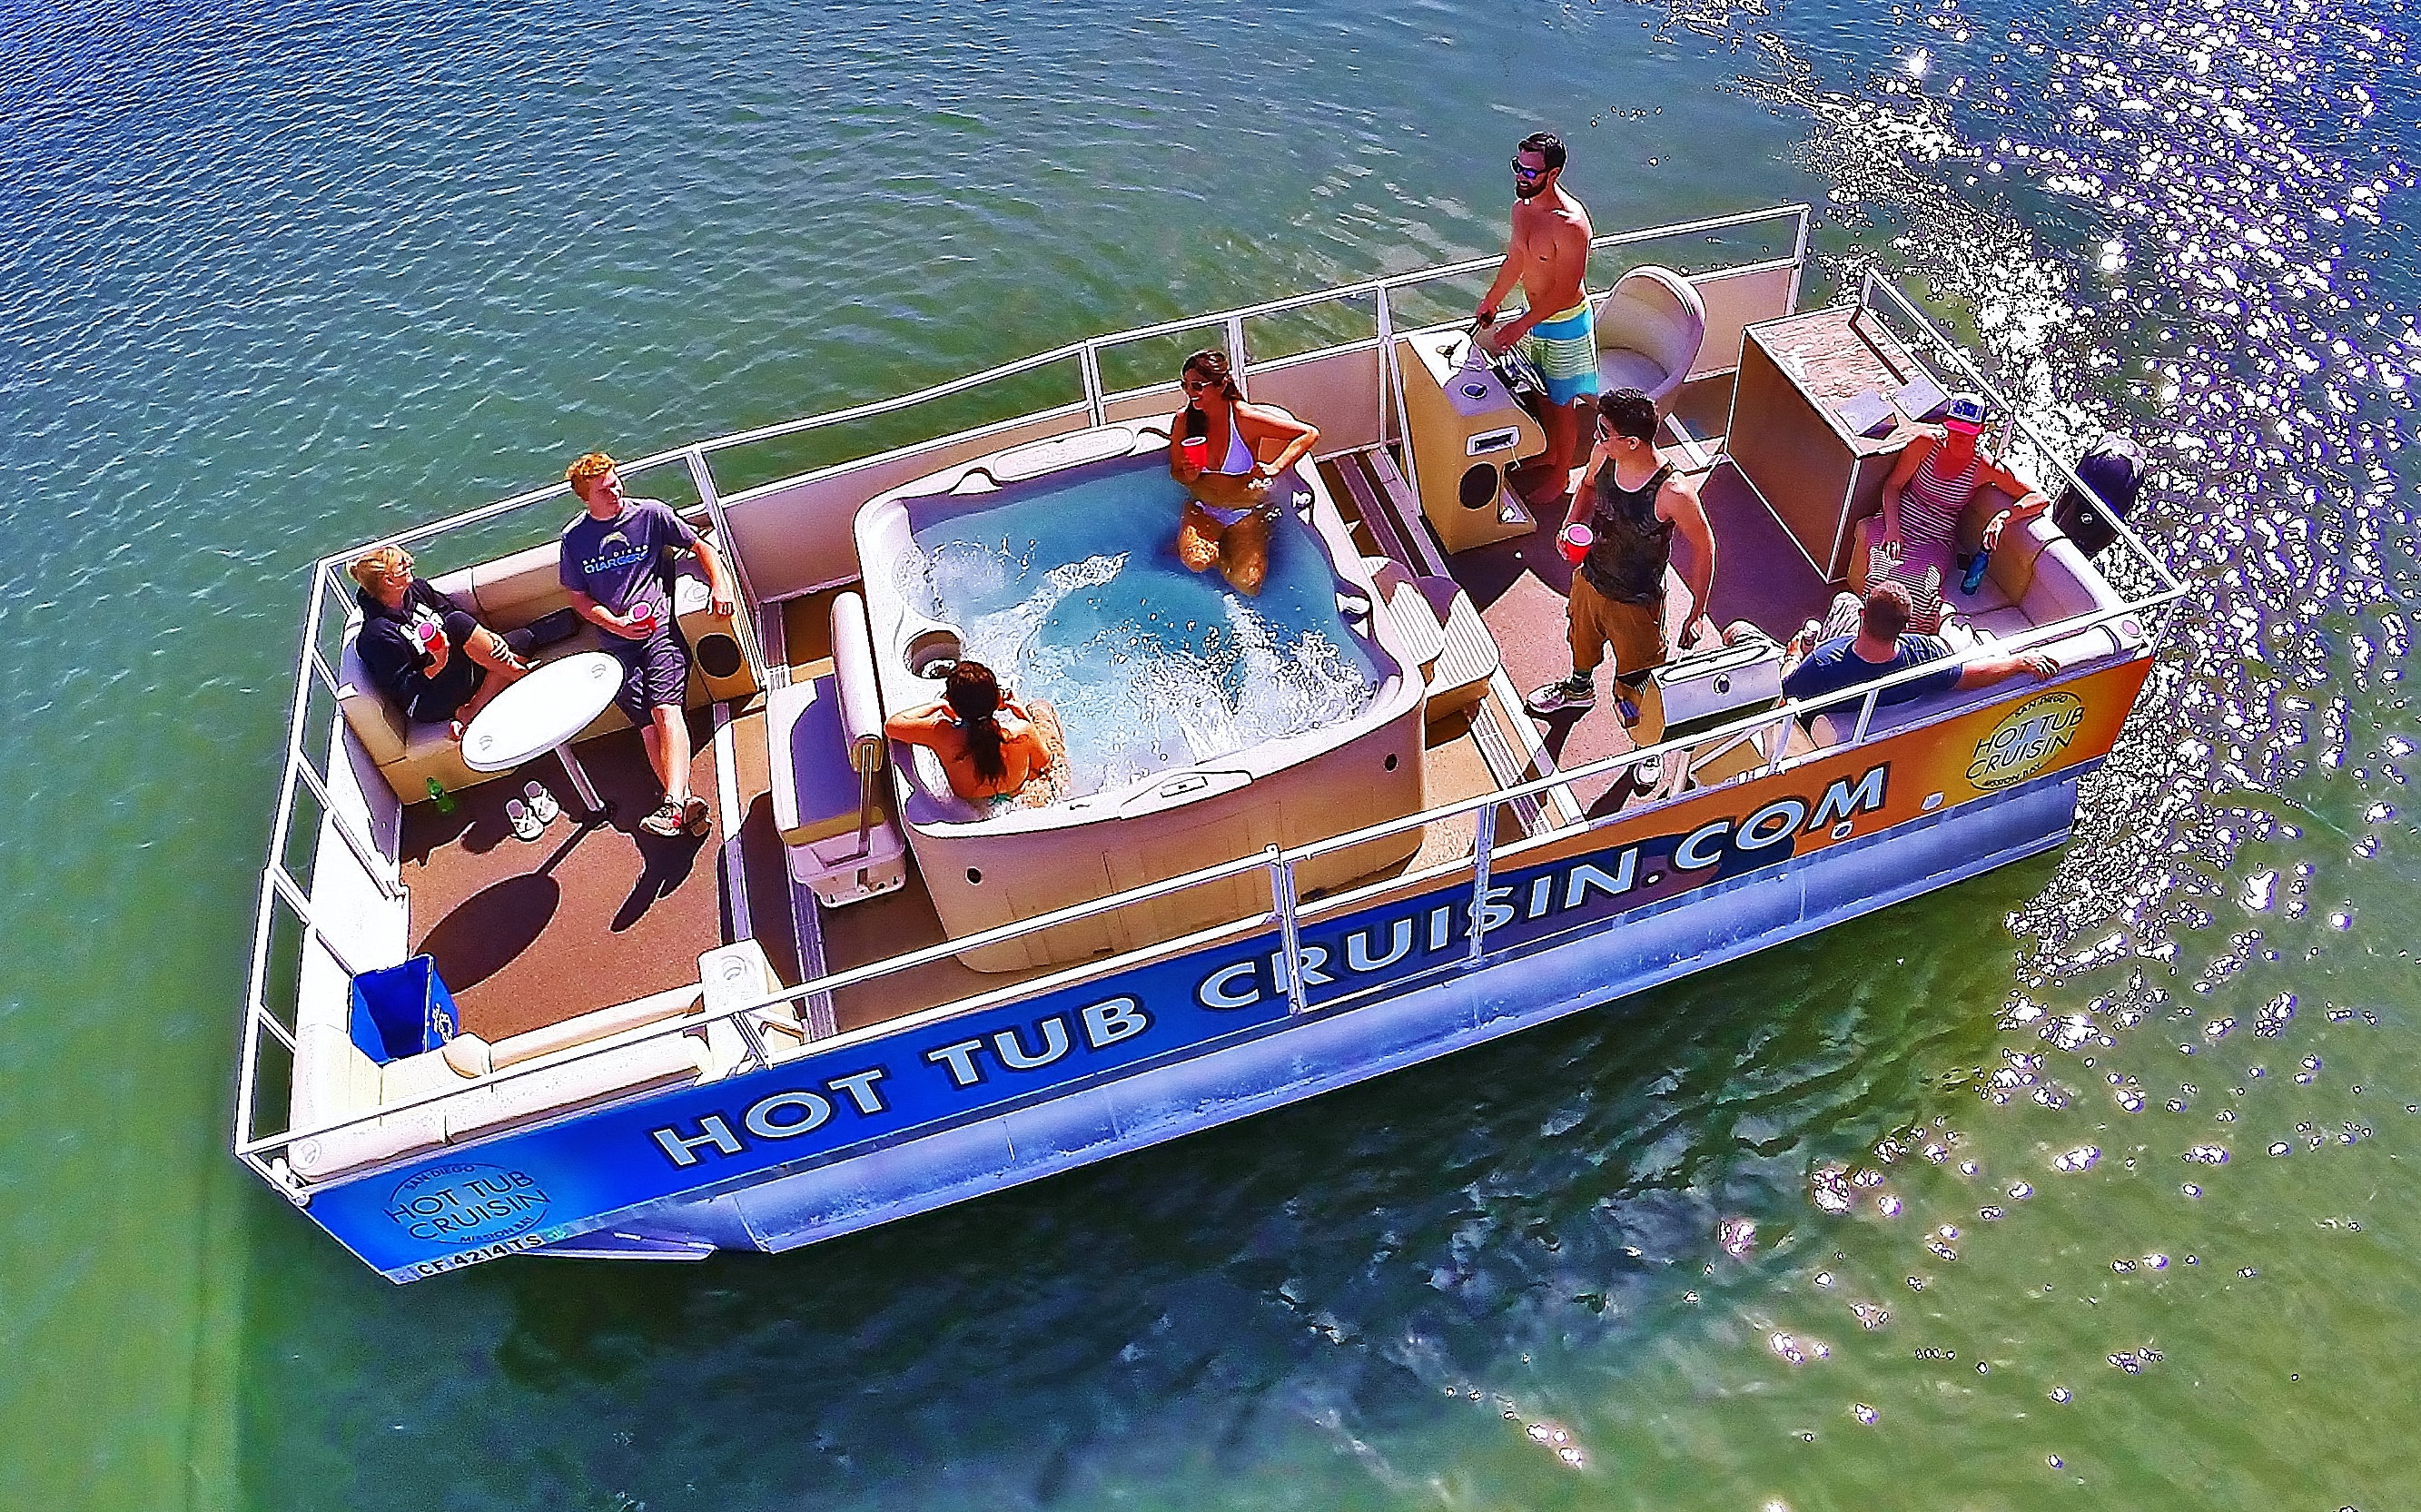 Hot-Tub-Cruisin-Hot-Tub-Boat-Cycle-Cruisin-Cycle-Boat-Pedal-Boat-Pontoon-Boat-Boat-Rental-3